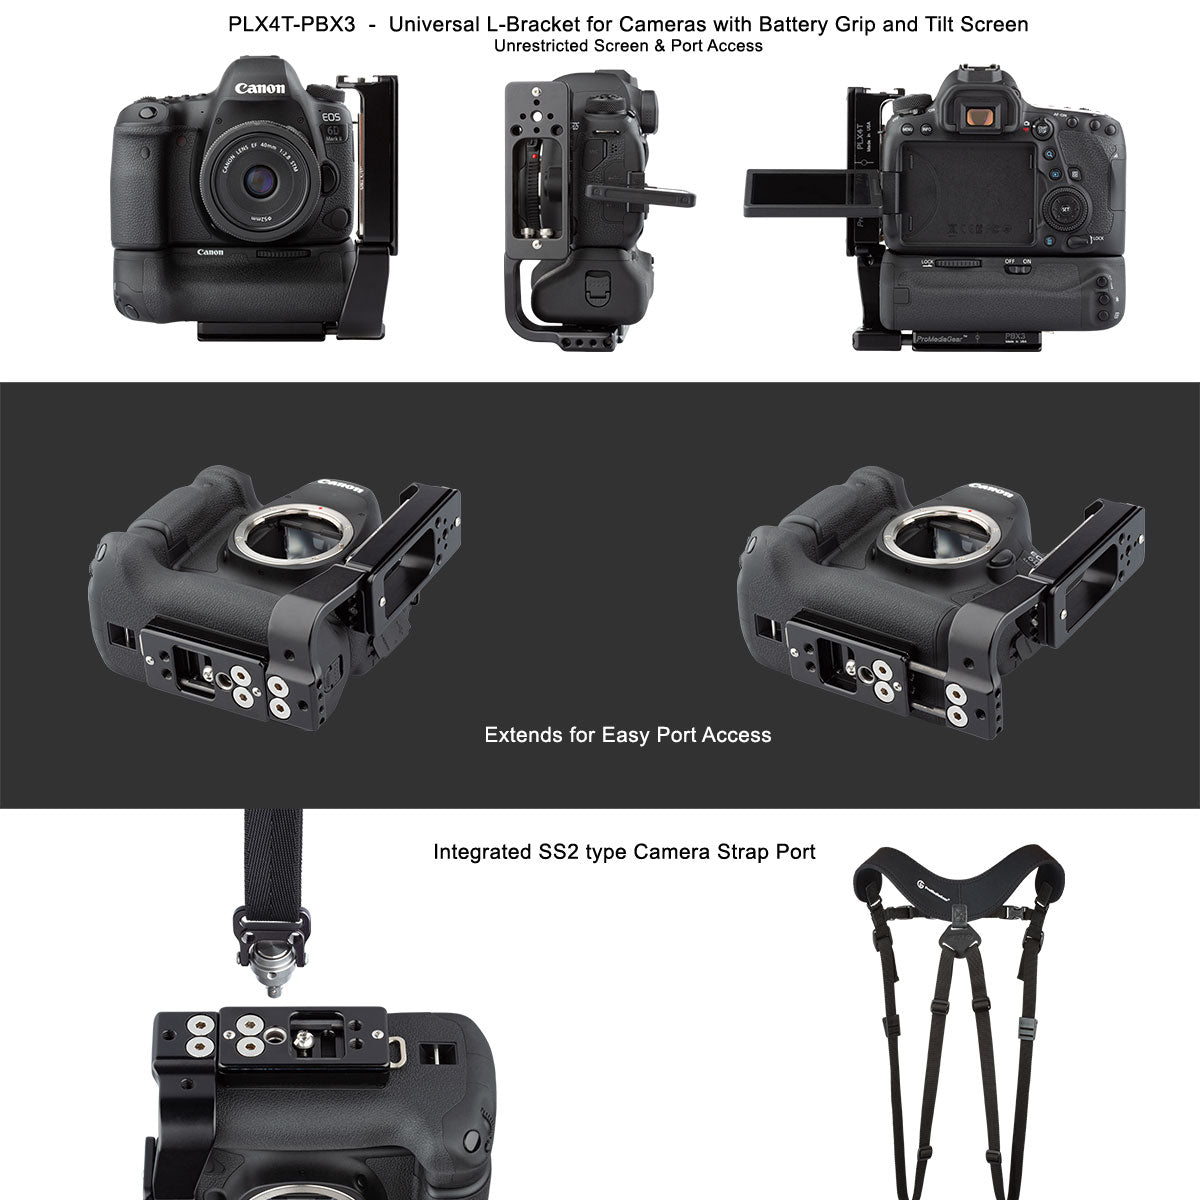 L-Bracket Plate for Canon Nikon Sony Mirrorless or DSLR with Tilt LCD Screens